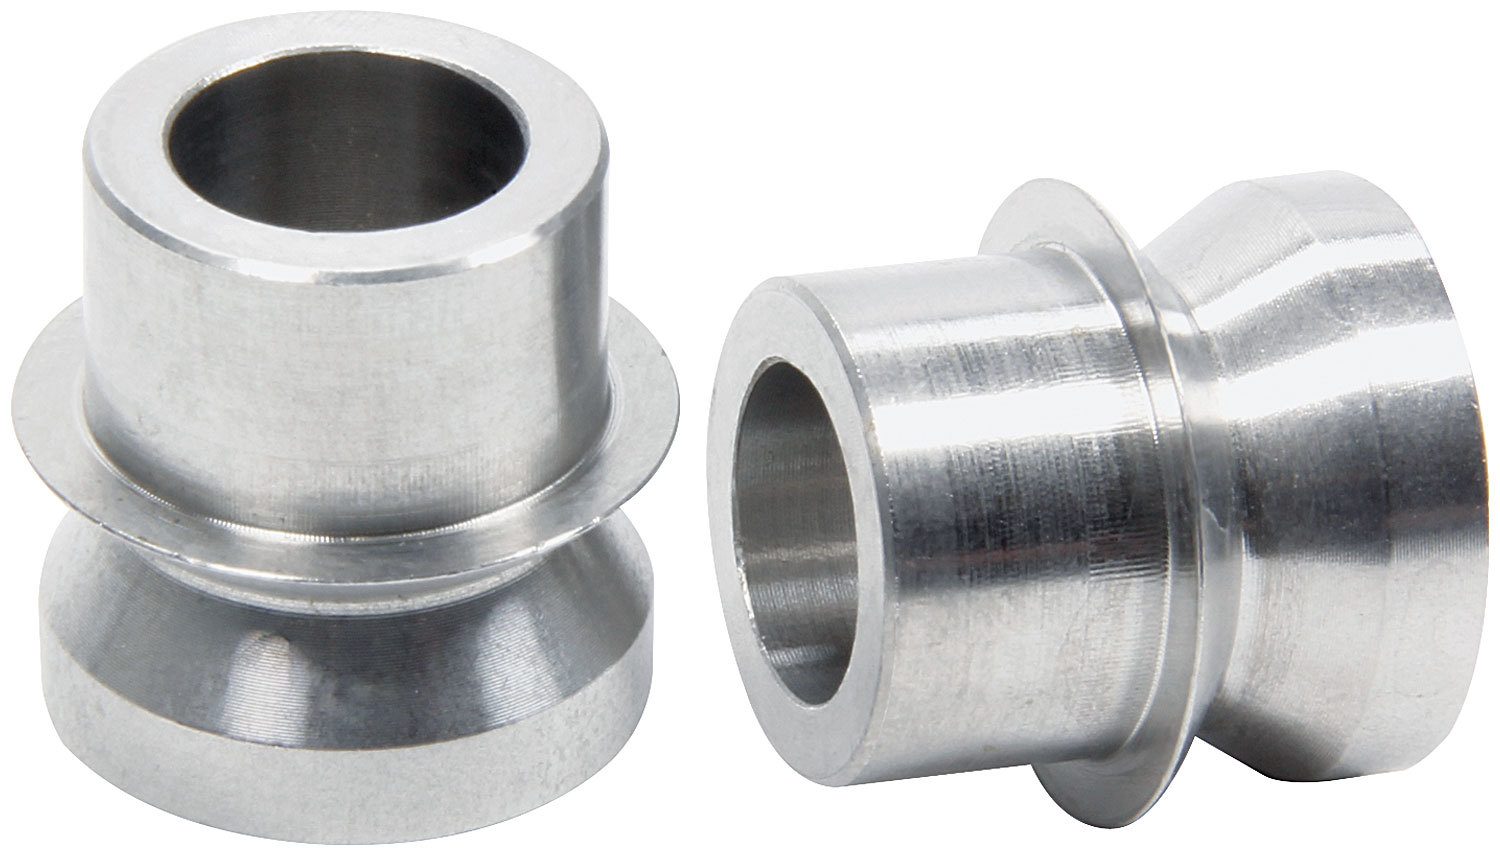 Allstar Performance 18785 Rod End Bushing, 5/8 to 1/2 in Bore, High Misalignment, Stainless, Natural, Pair